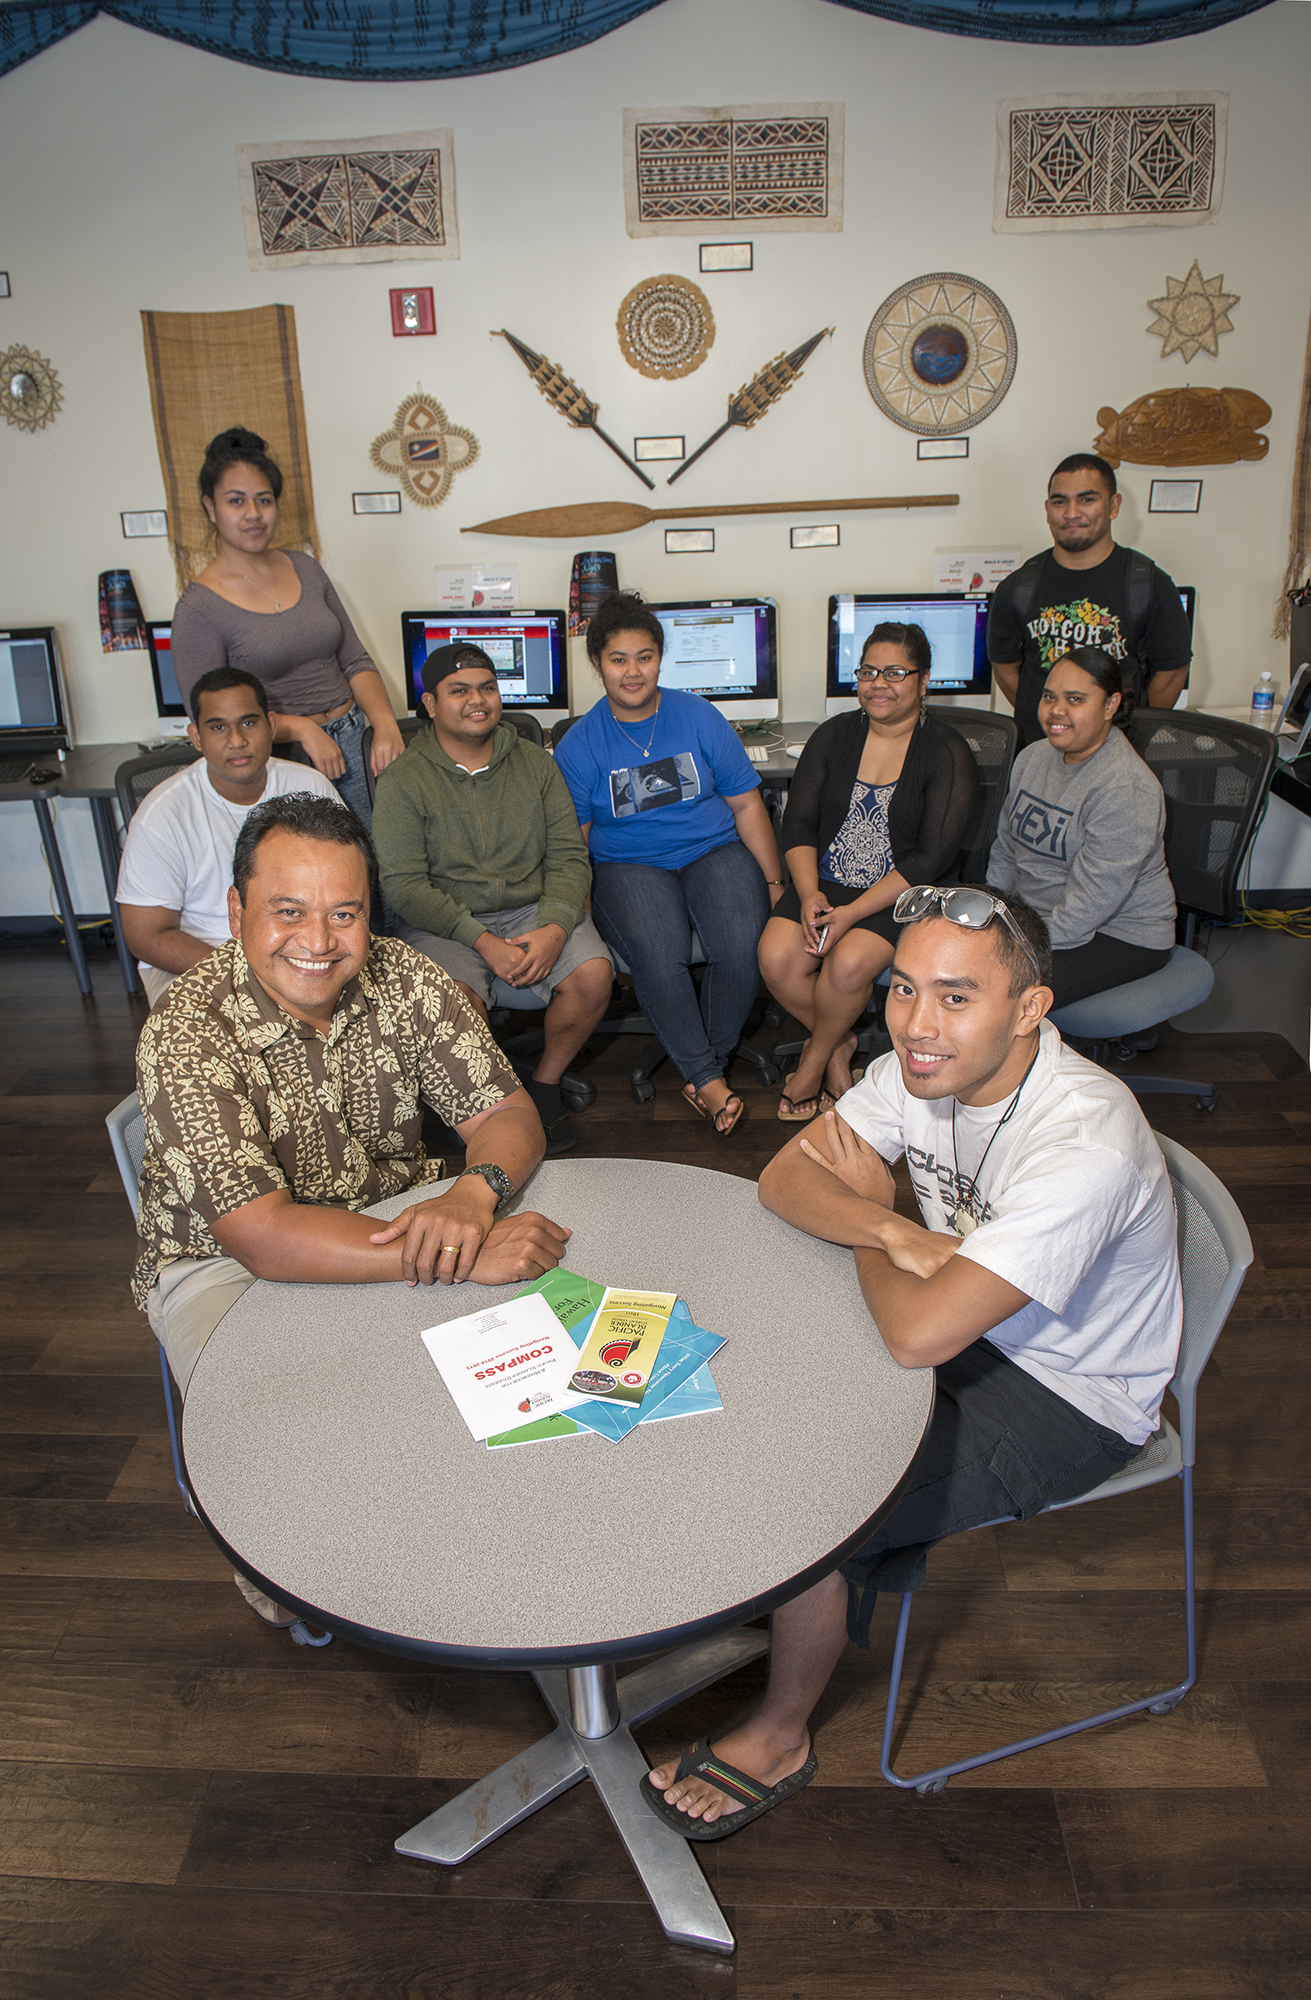 <p>Vidalino Raatior, left, with Micronesian students and staff at the Pacific Islander Student Center at UH Hilo. Raatior runs the student center and is determined to help fellow Micronesians settle successfully in Hawaii.</p>